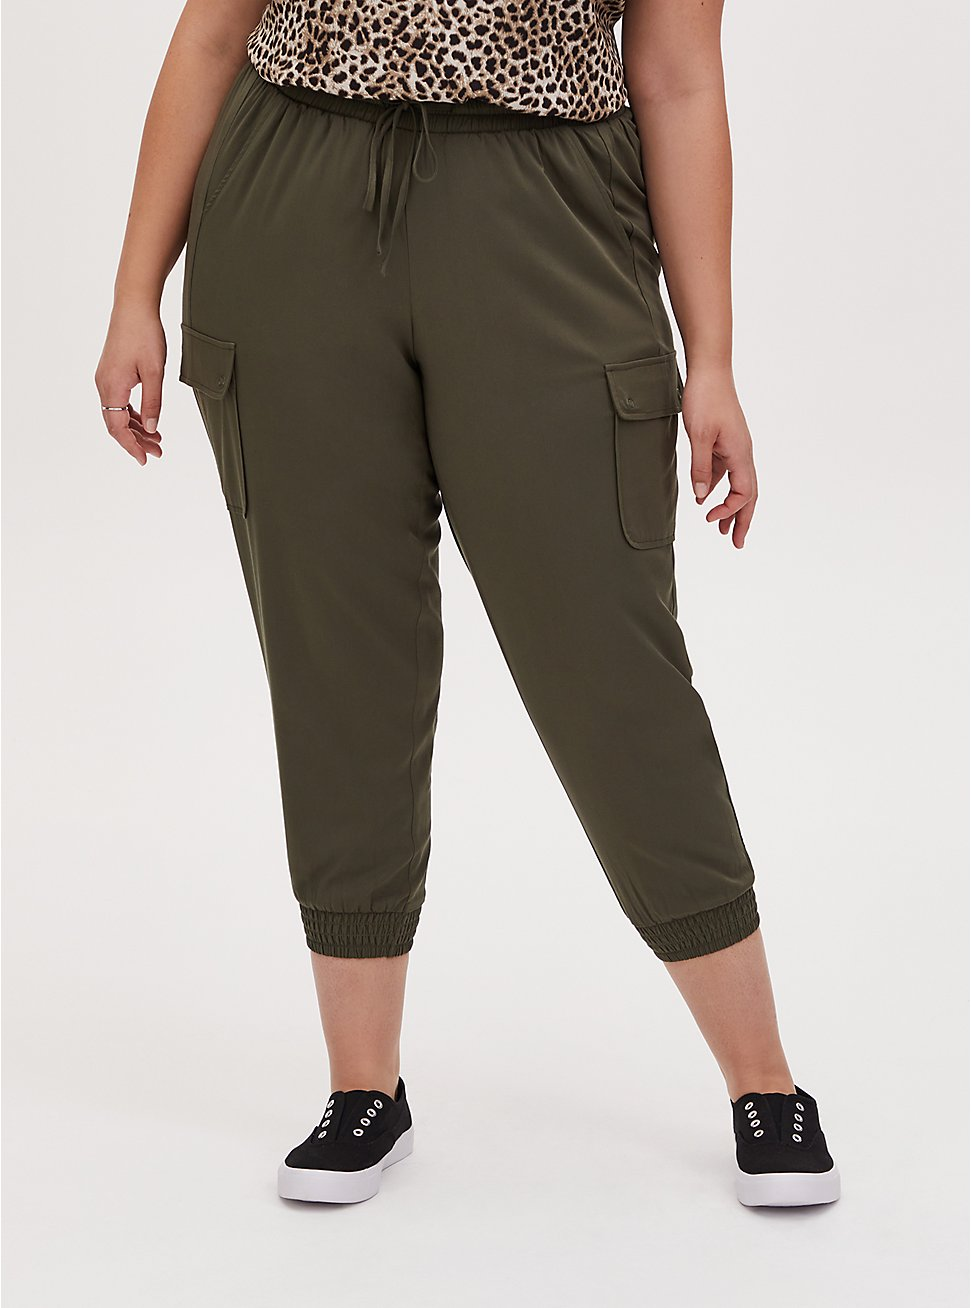 Relaxed Fit Jogger - Challis Olive Green, DEEP DEPTHS, hi-res